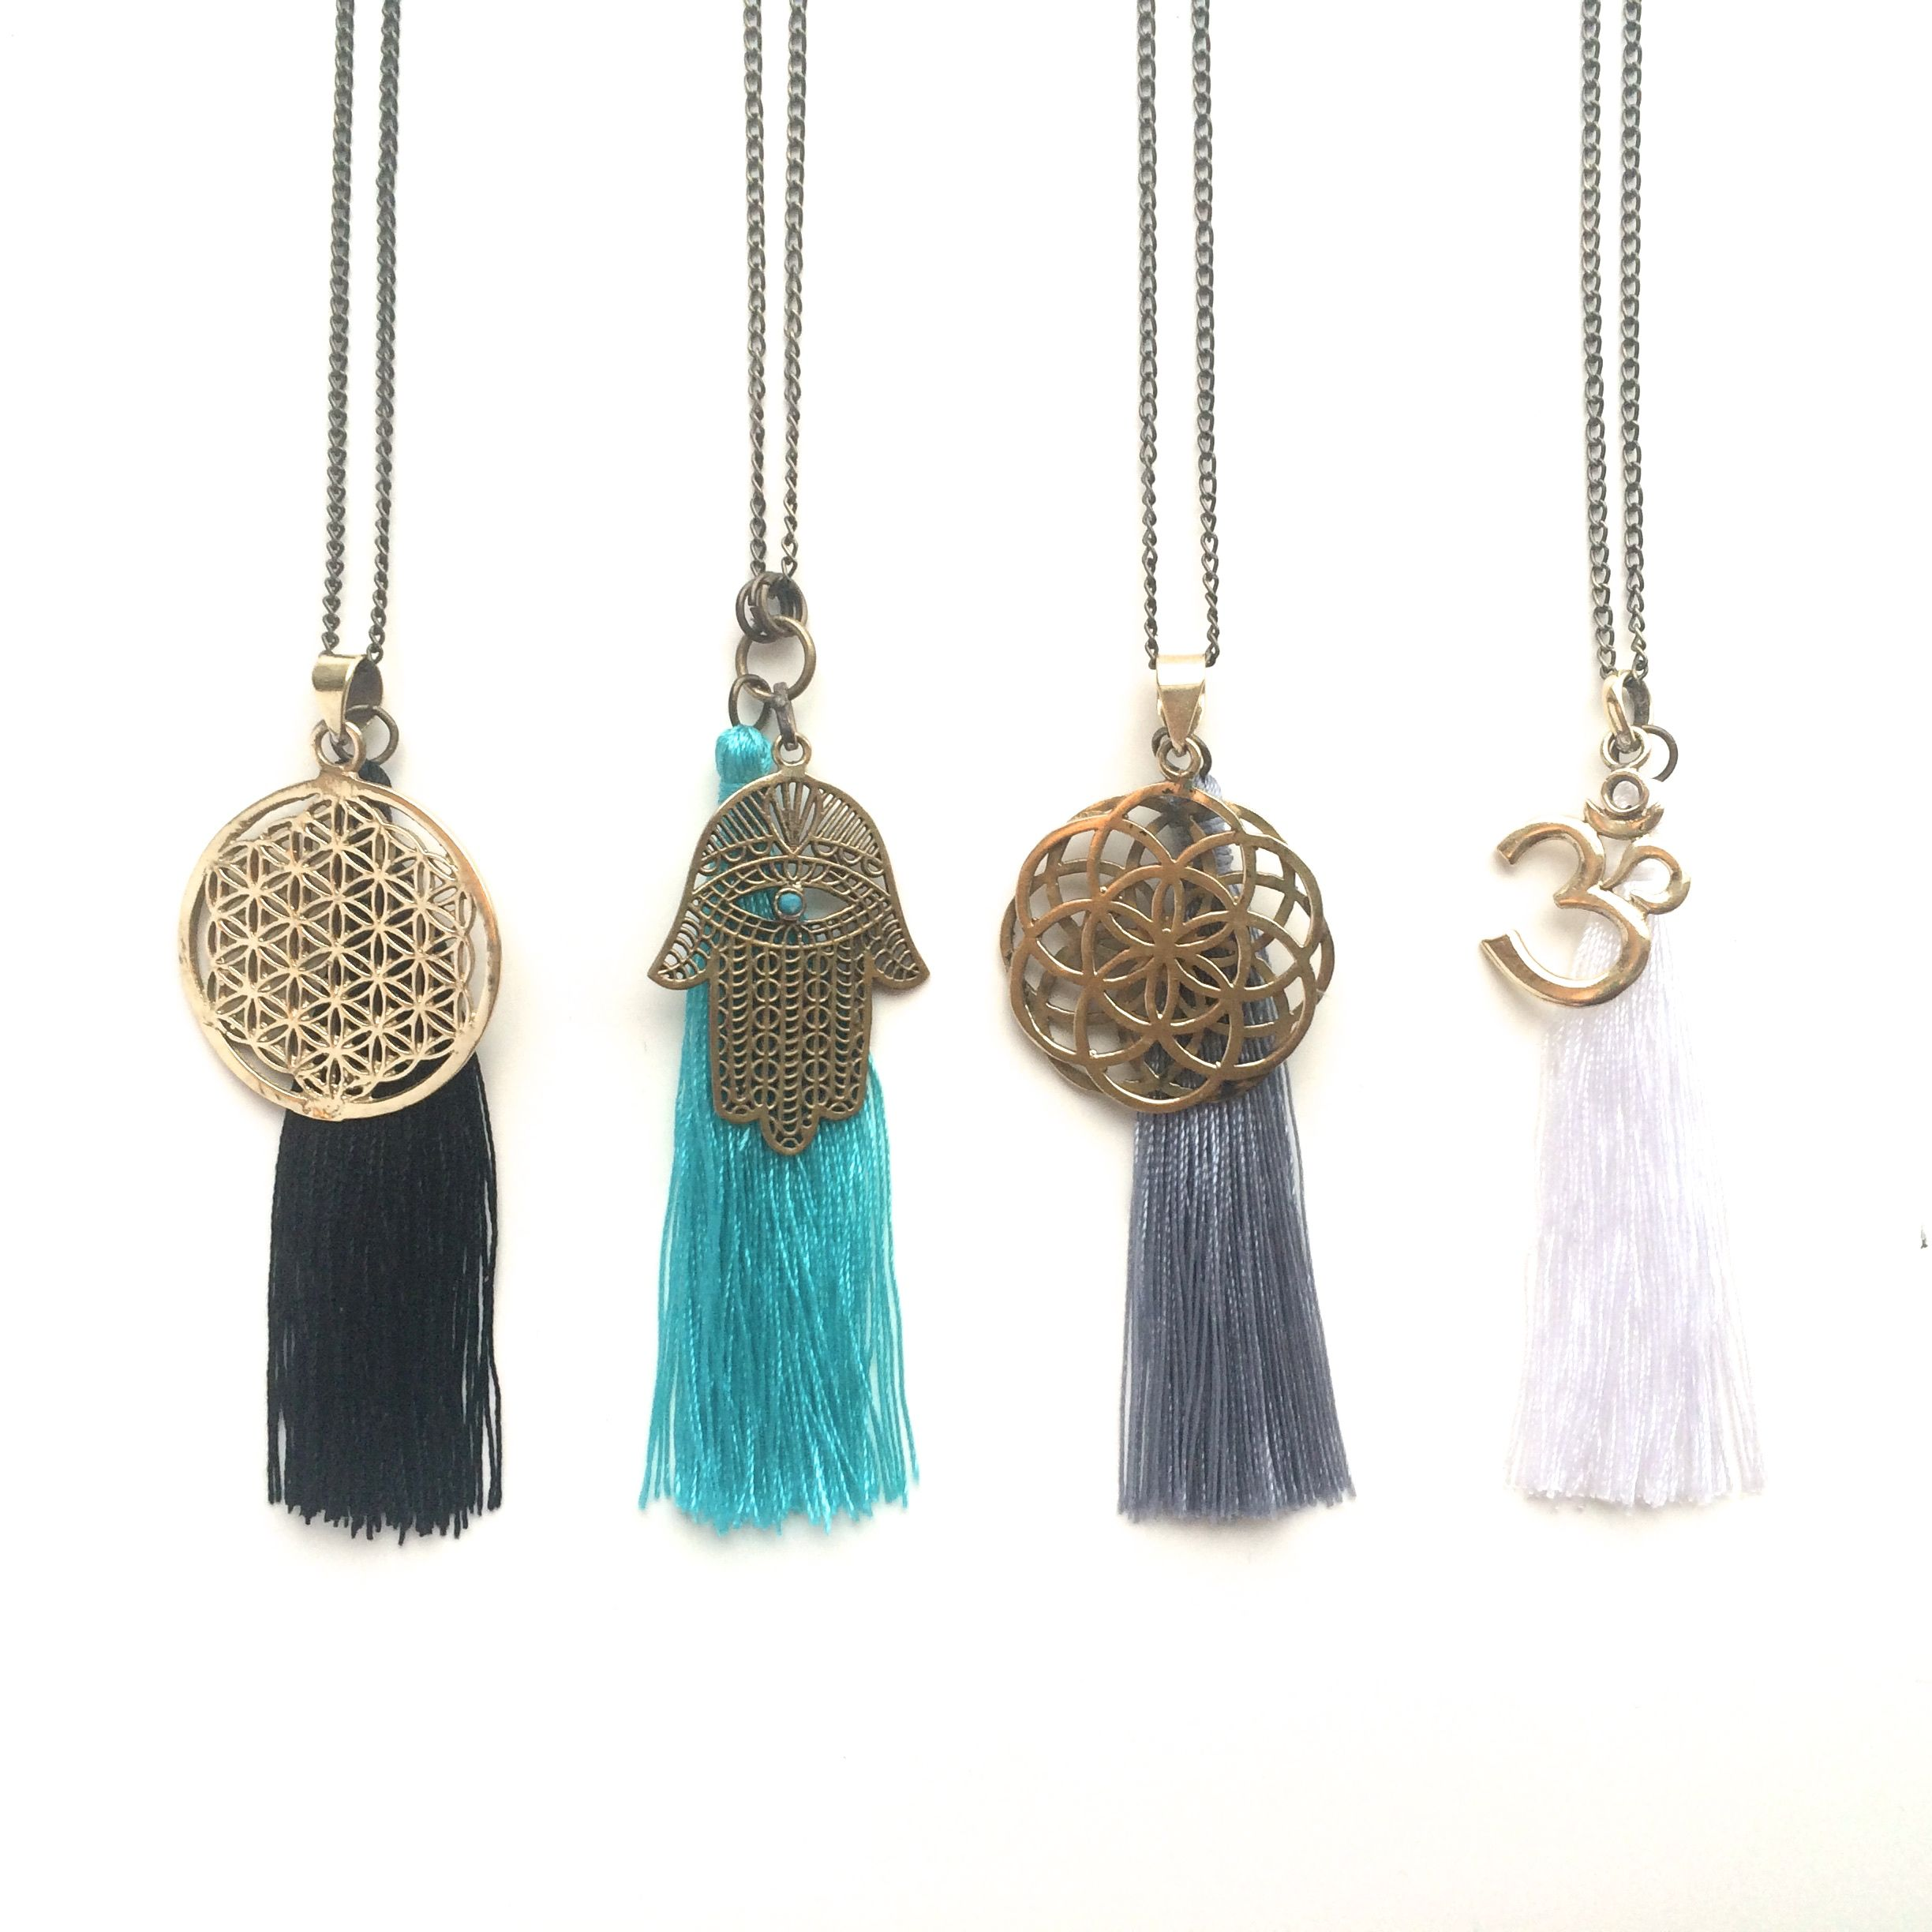 Collaboration Necklaces by Sweet Harriet Designs & Gypsalove Collaboration is the new competition